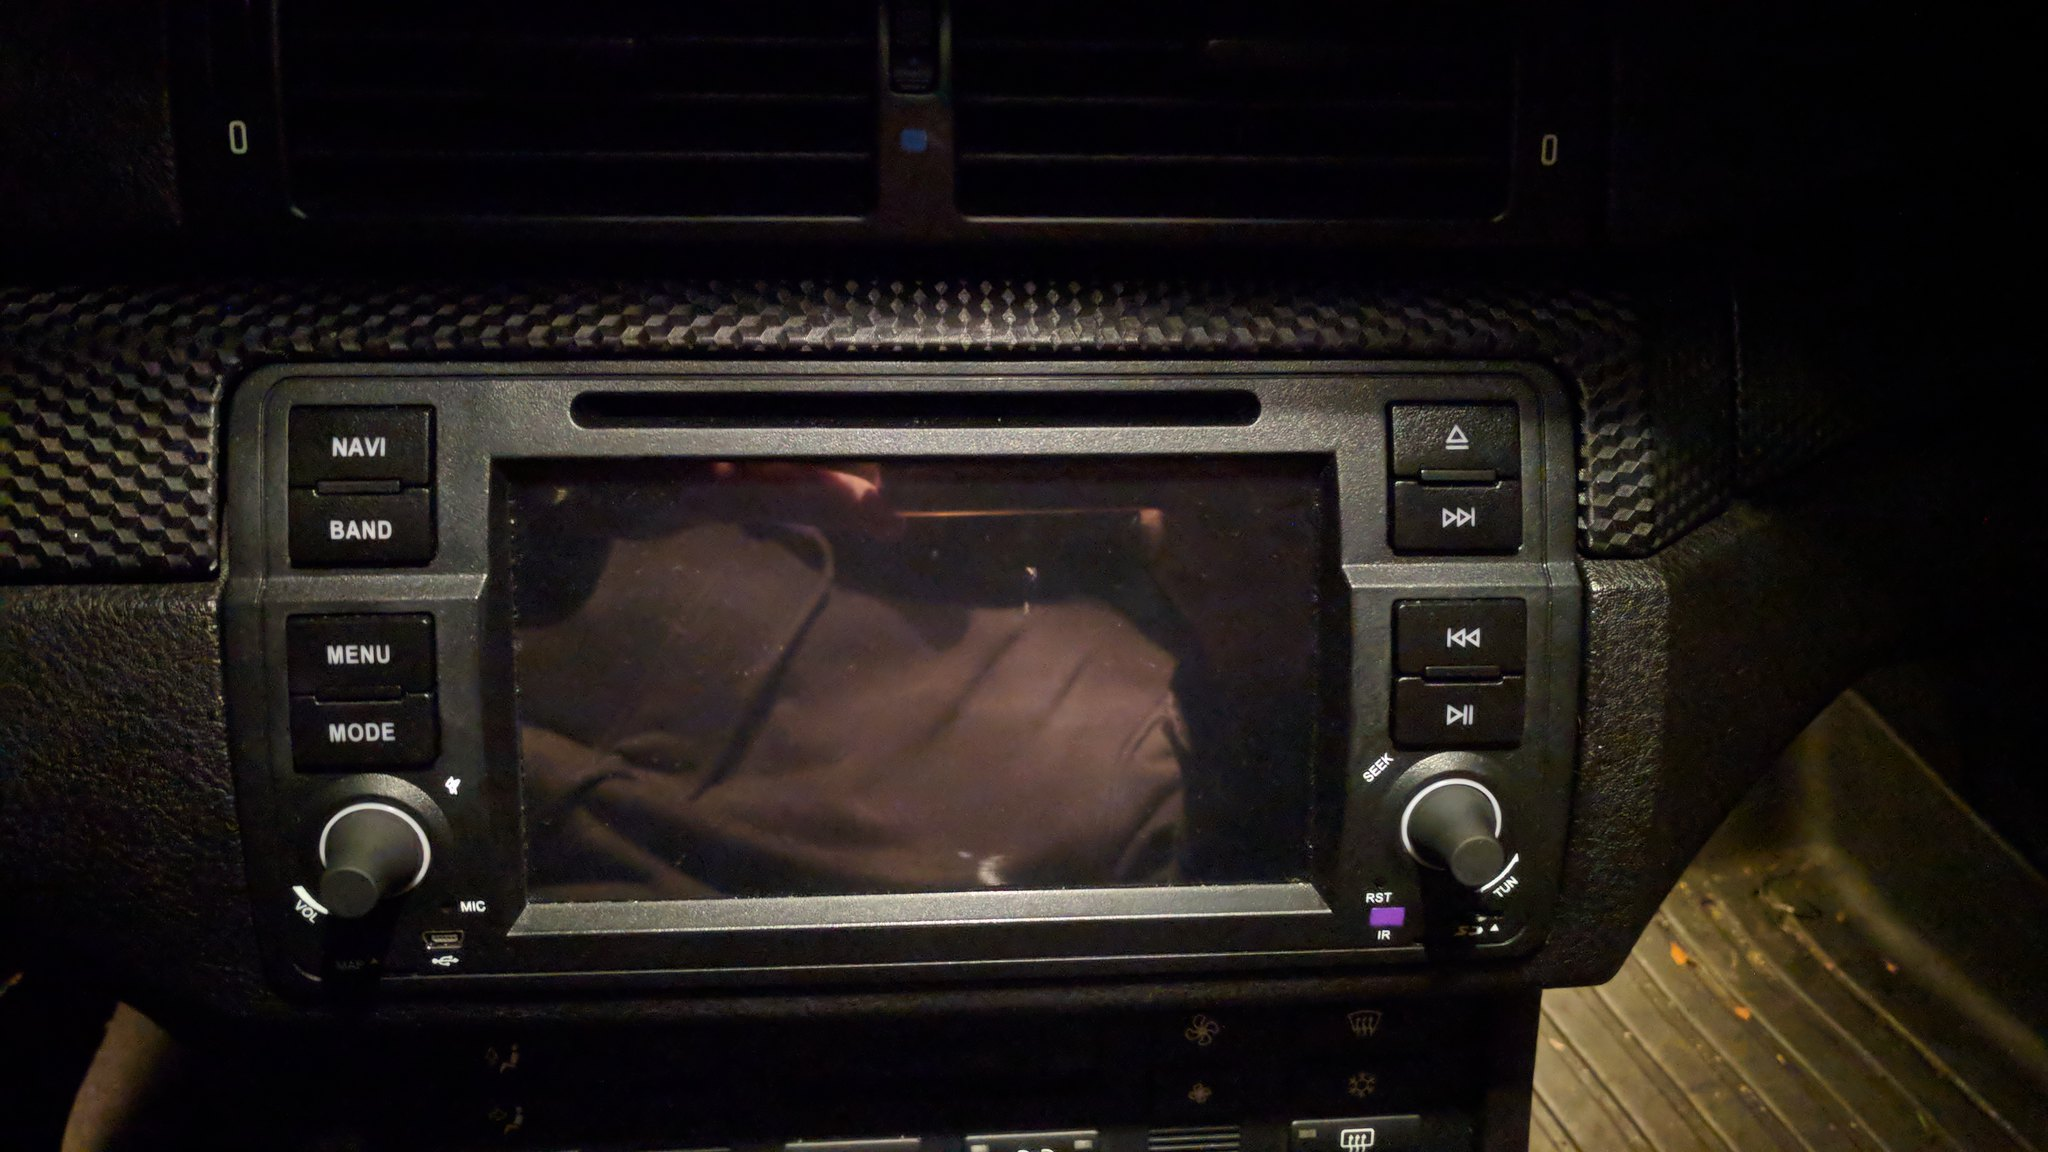 Review: Xtrons PB7646BAP Android 6 0 Head Unit - Pic Heavy